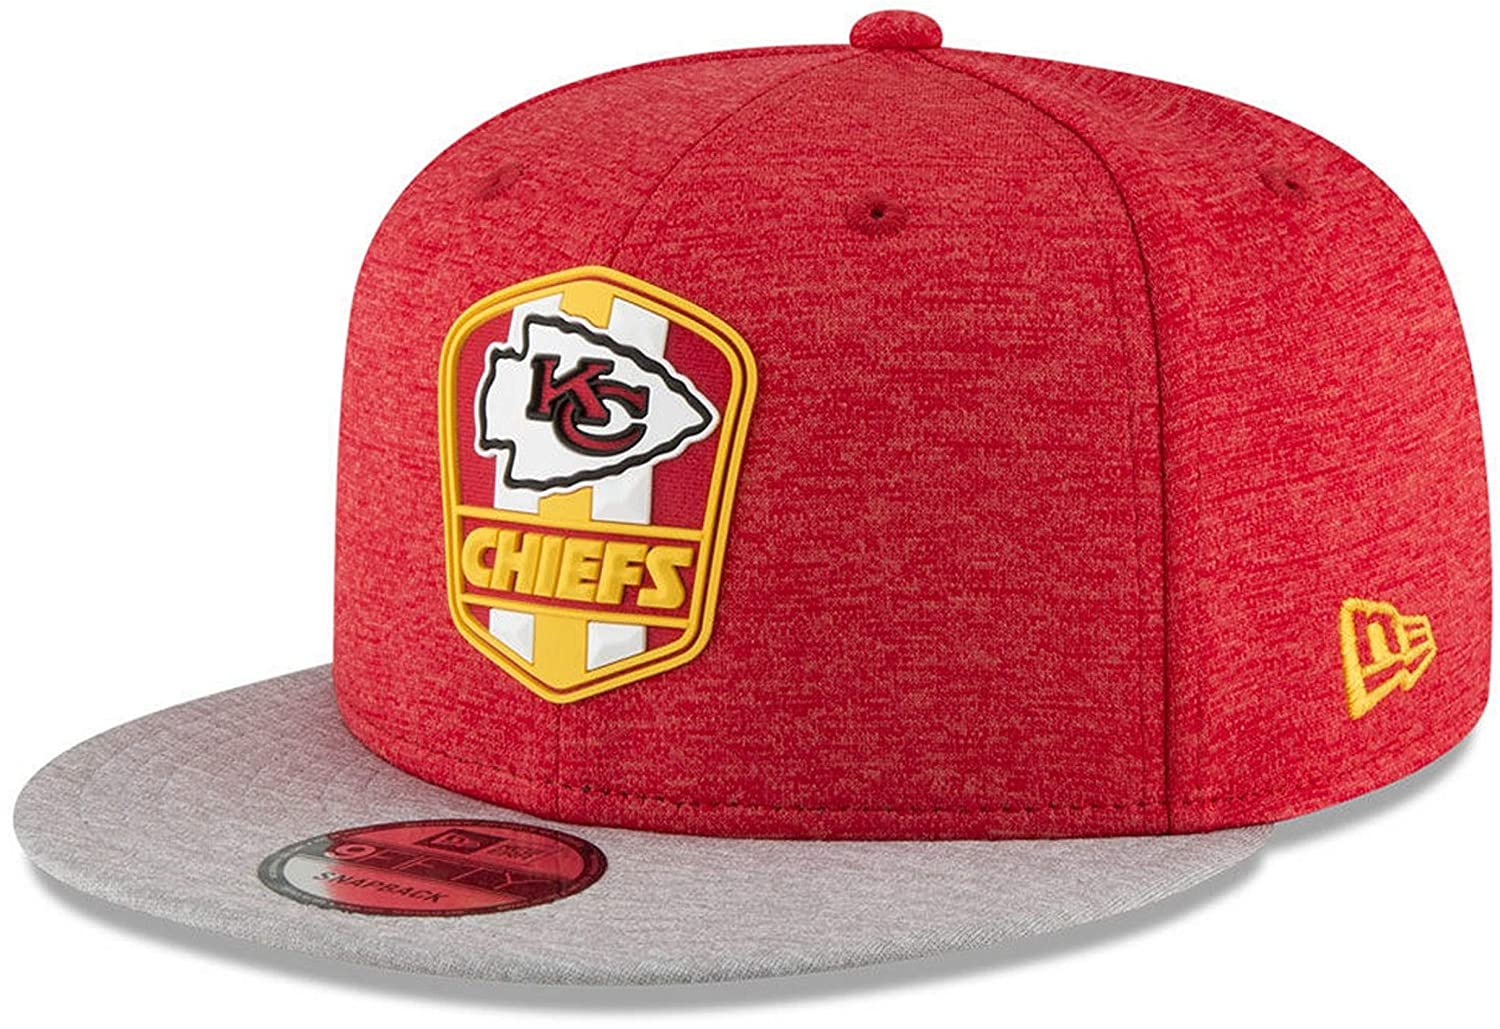 500ef022 Amazon.com : New Era Kansas City Chiefs 2018 NFL Sideline Road Official  9FIFTY Snapback Hat : Sports & Outdoors